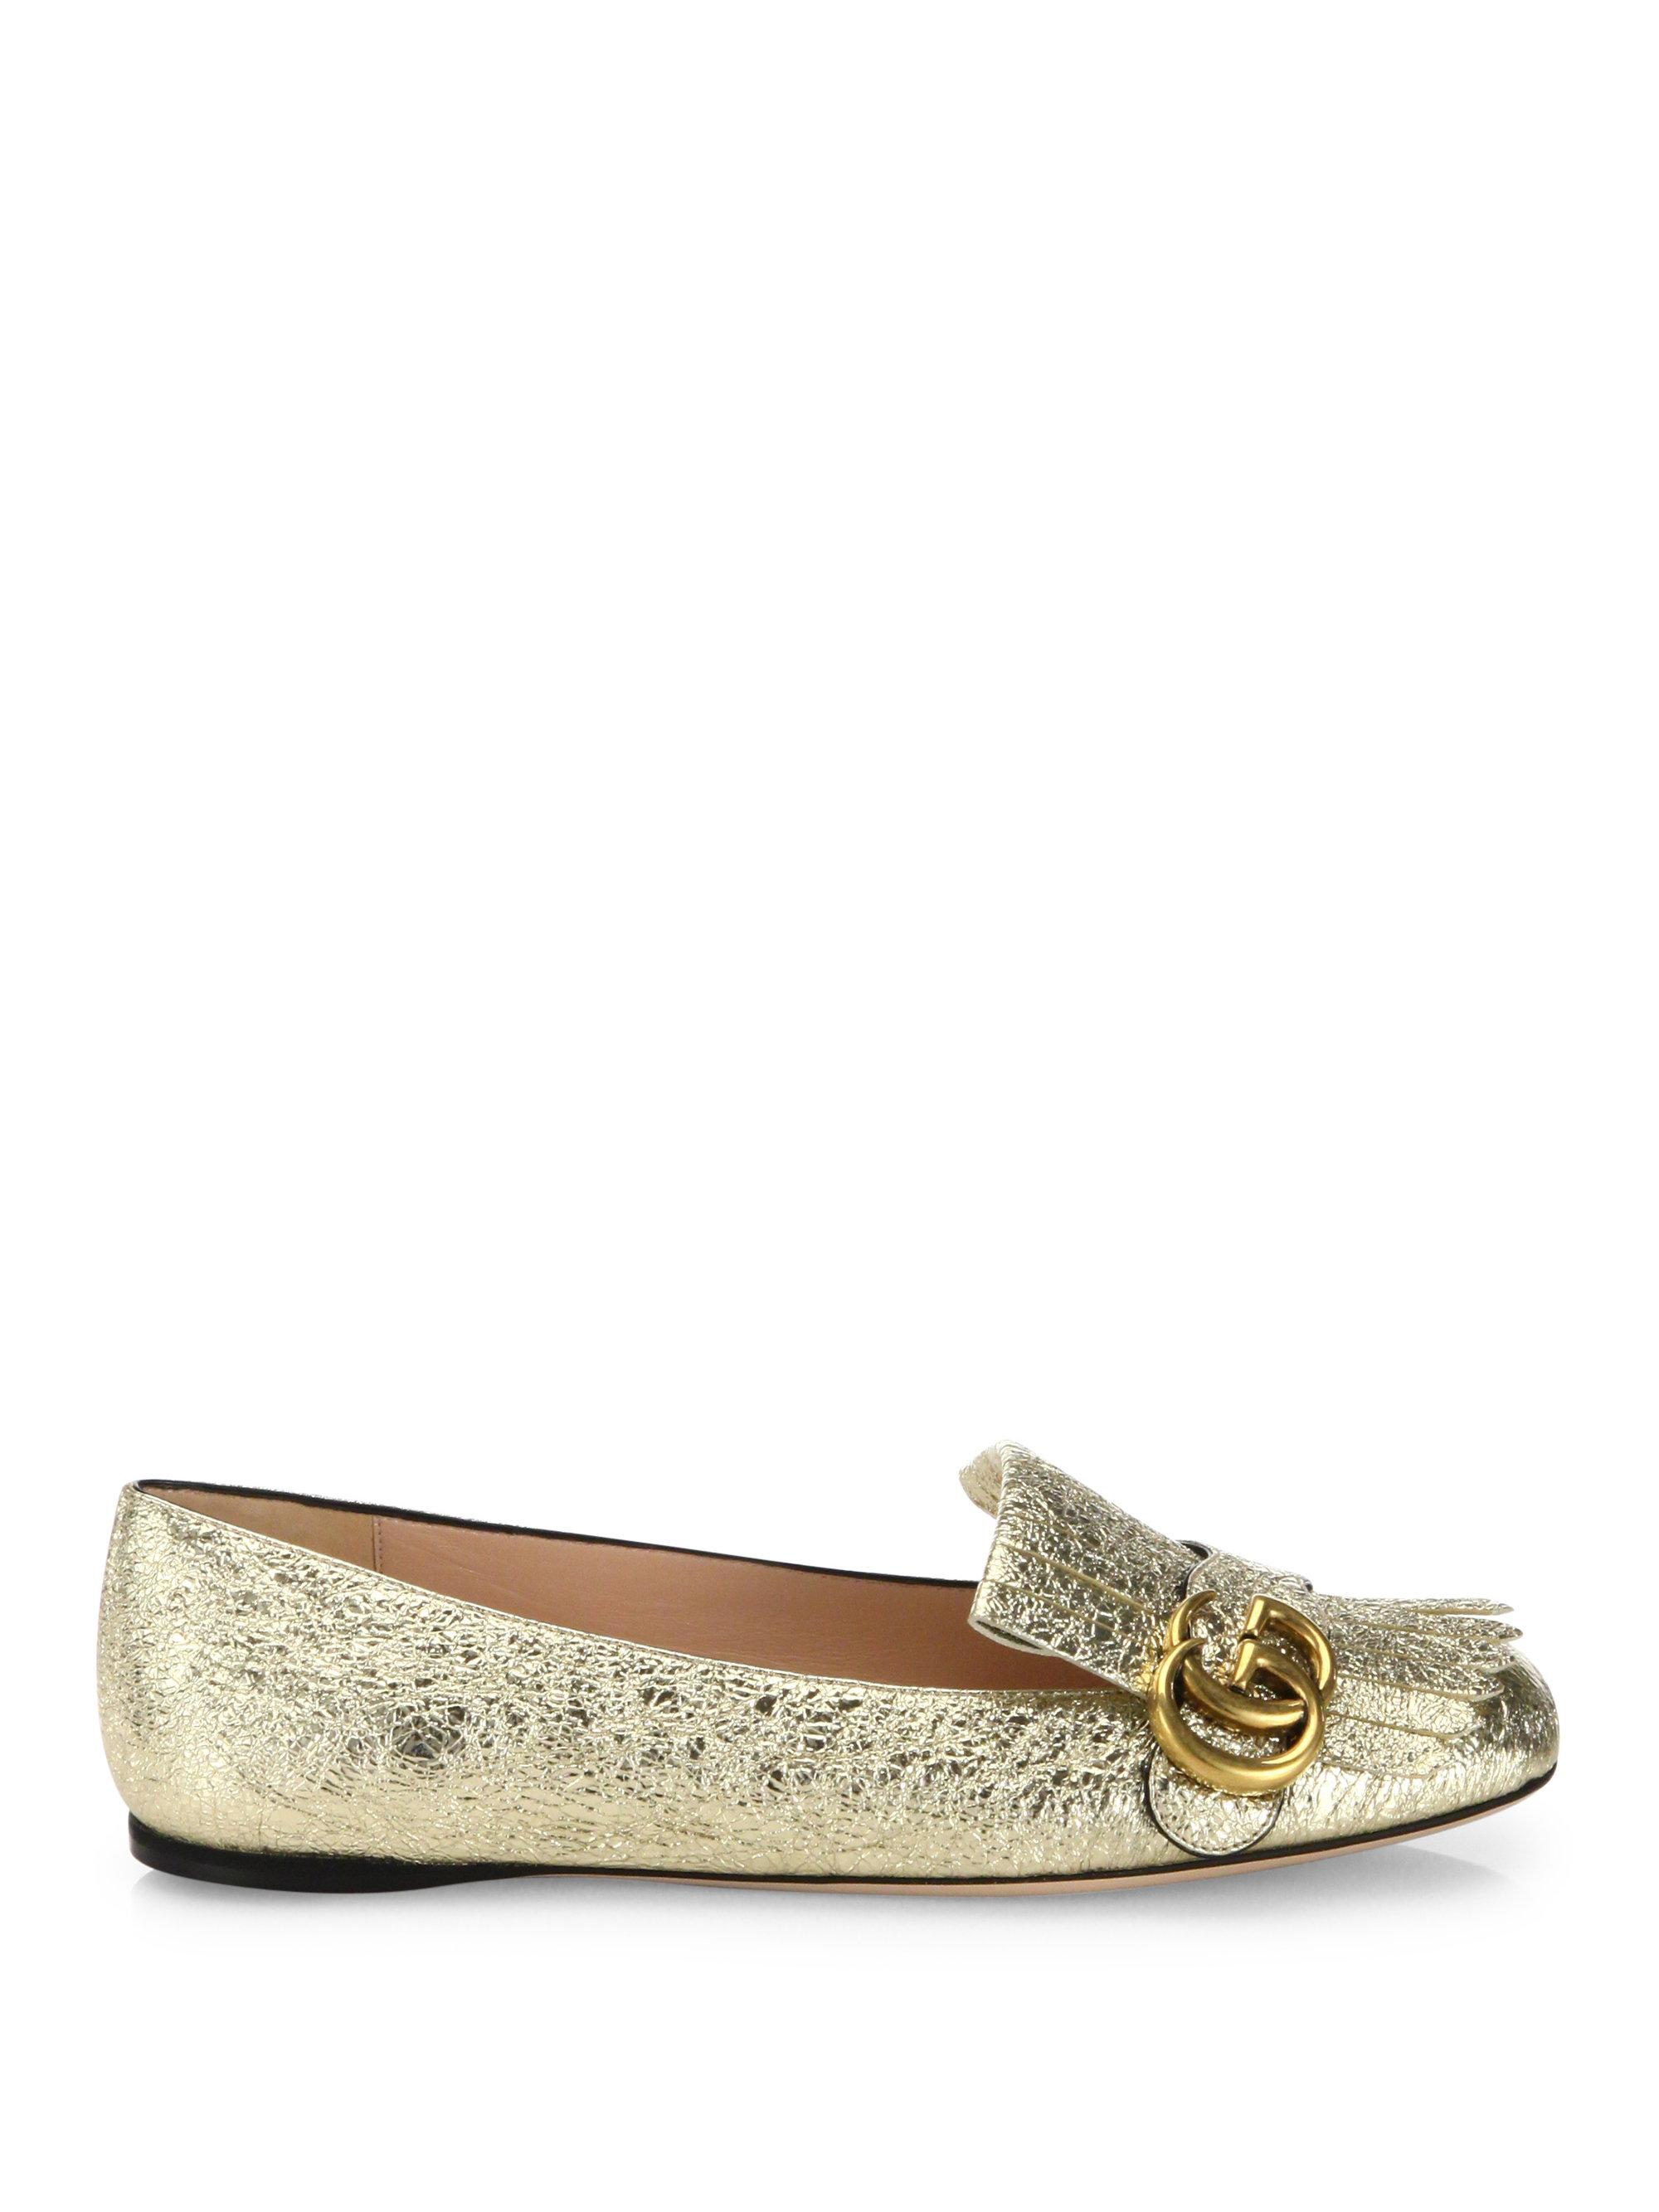 ScXTDxKgV0 Marmont GG Metallic Leather Kiltie Flats zv5spd5A